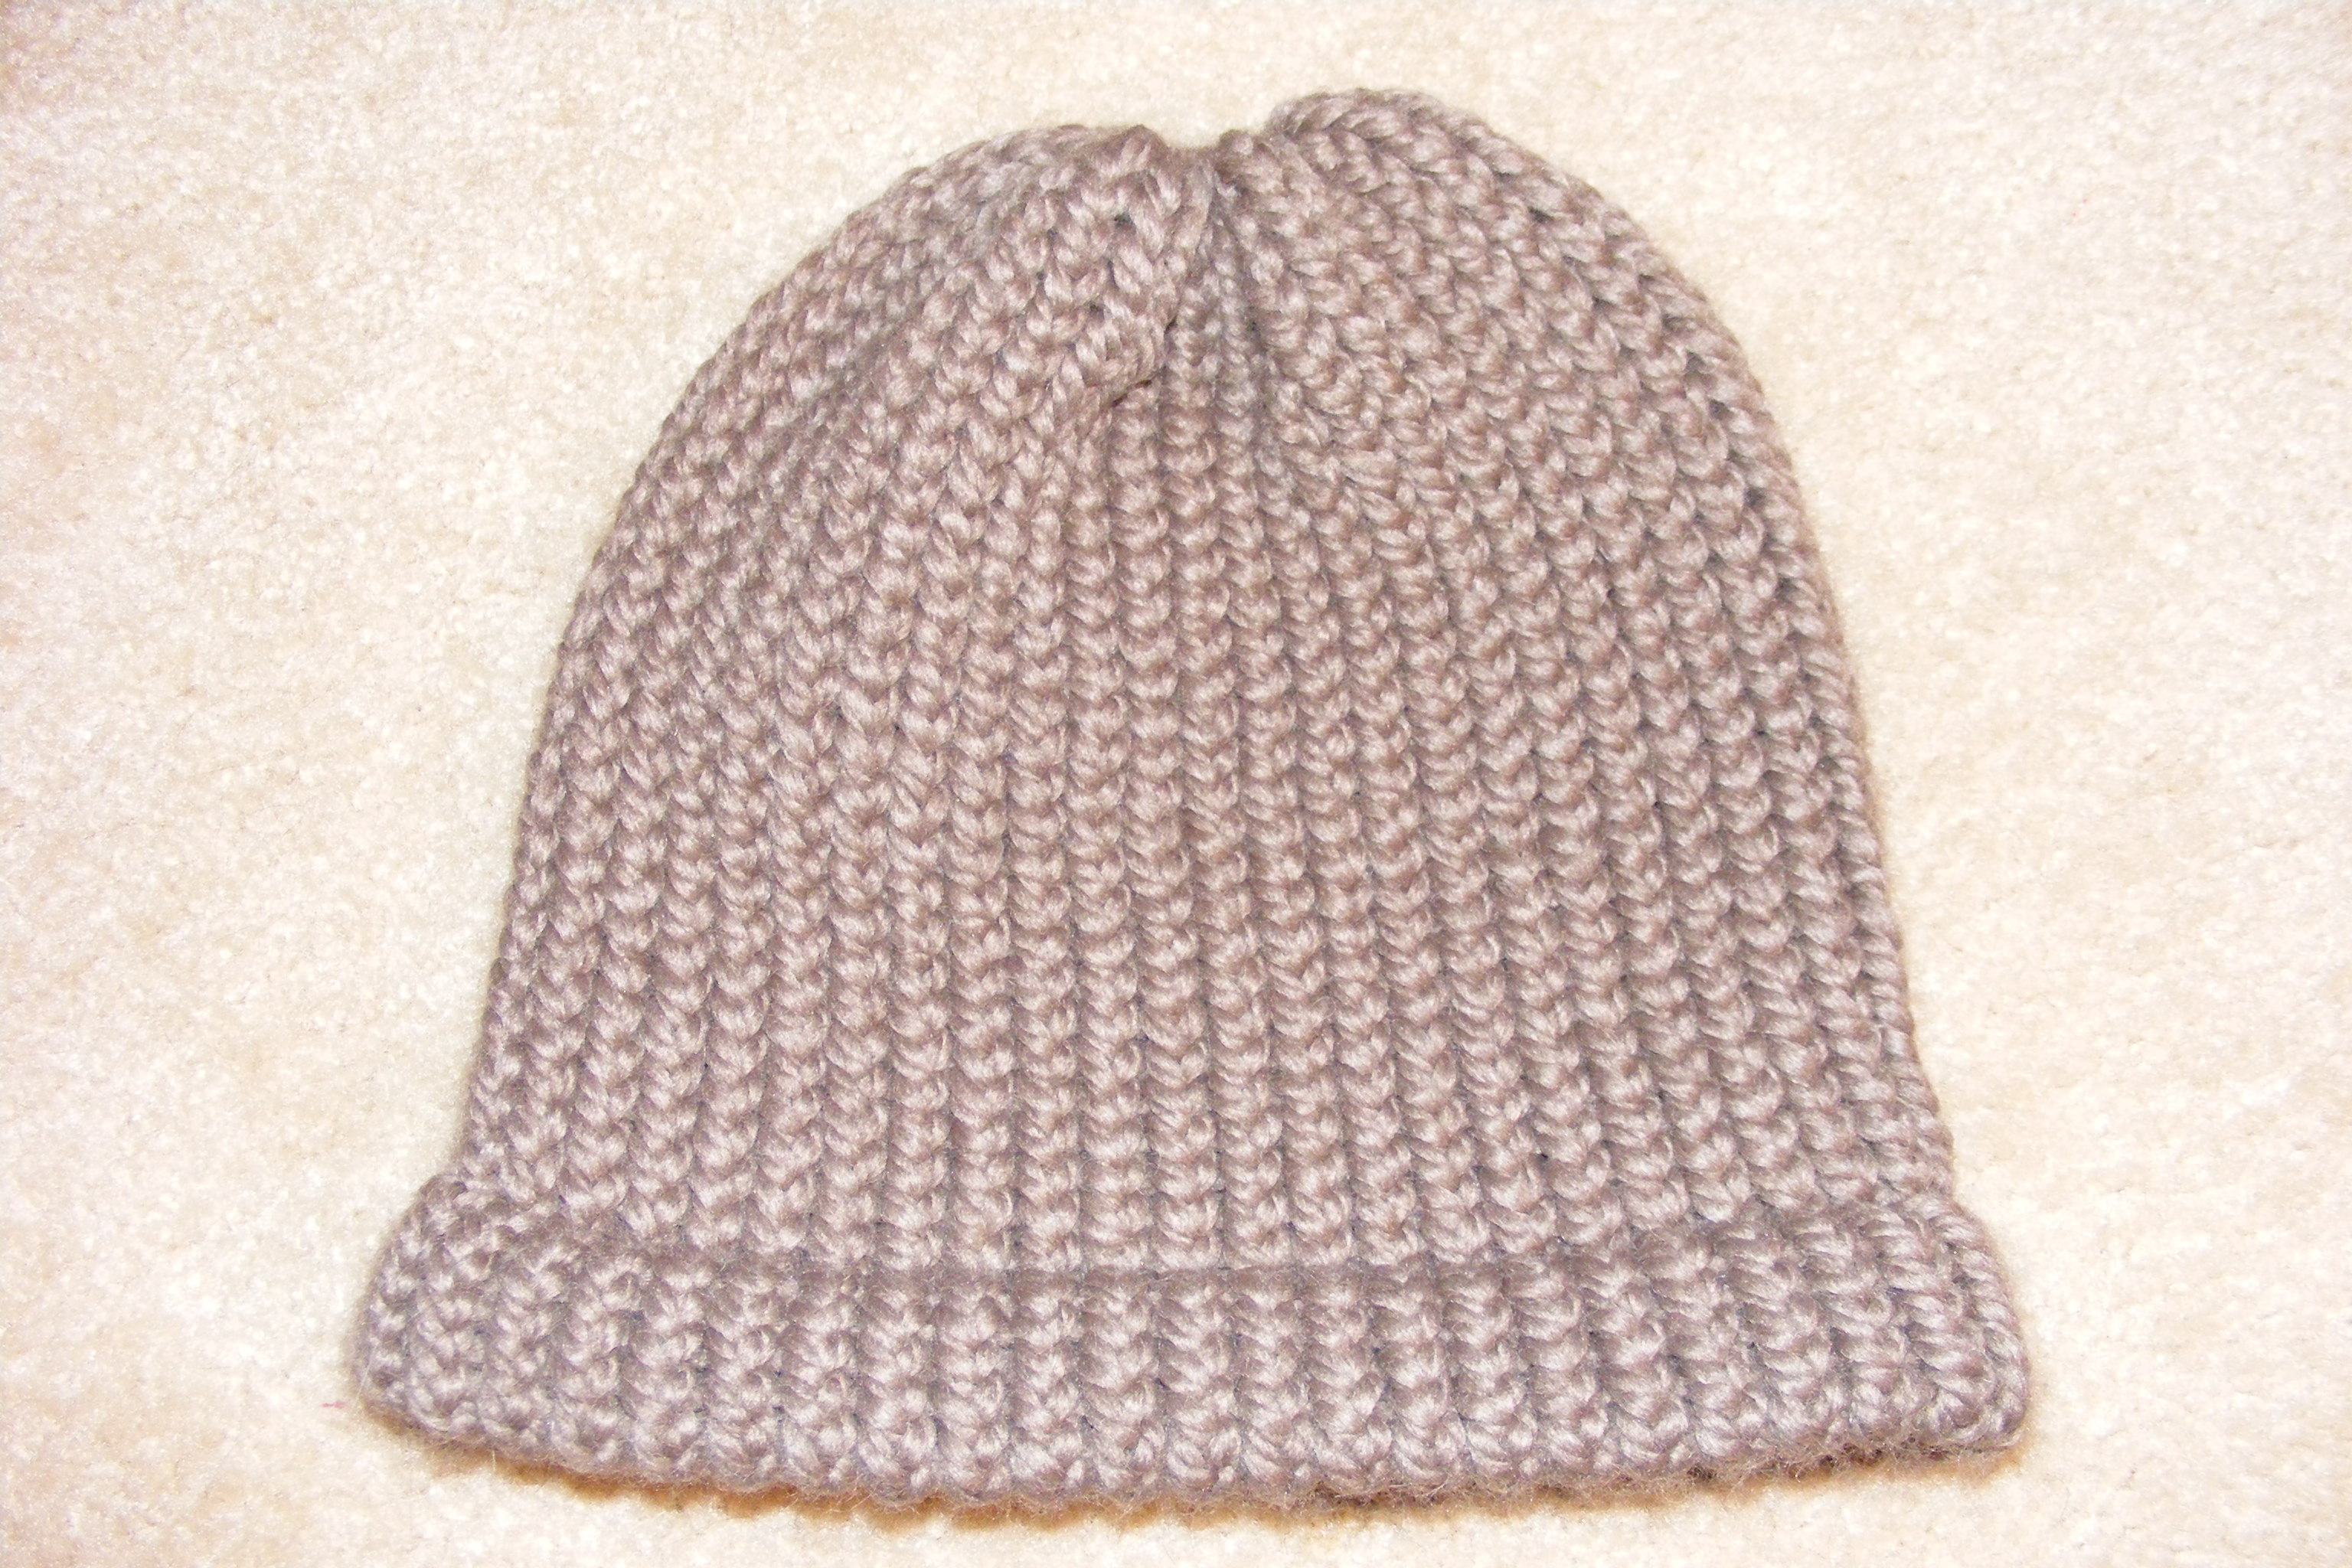 Loom Knit Baby Hat Tutorial : How to loom knit tutorials projects and tips